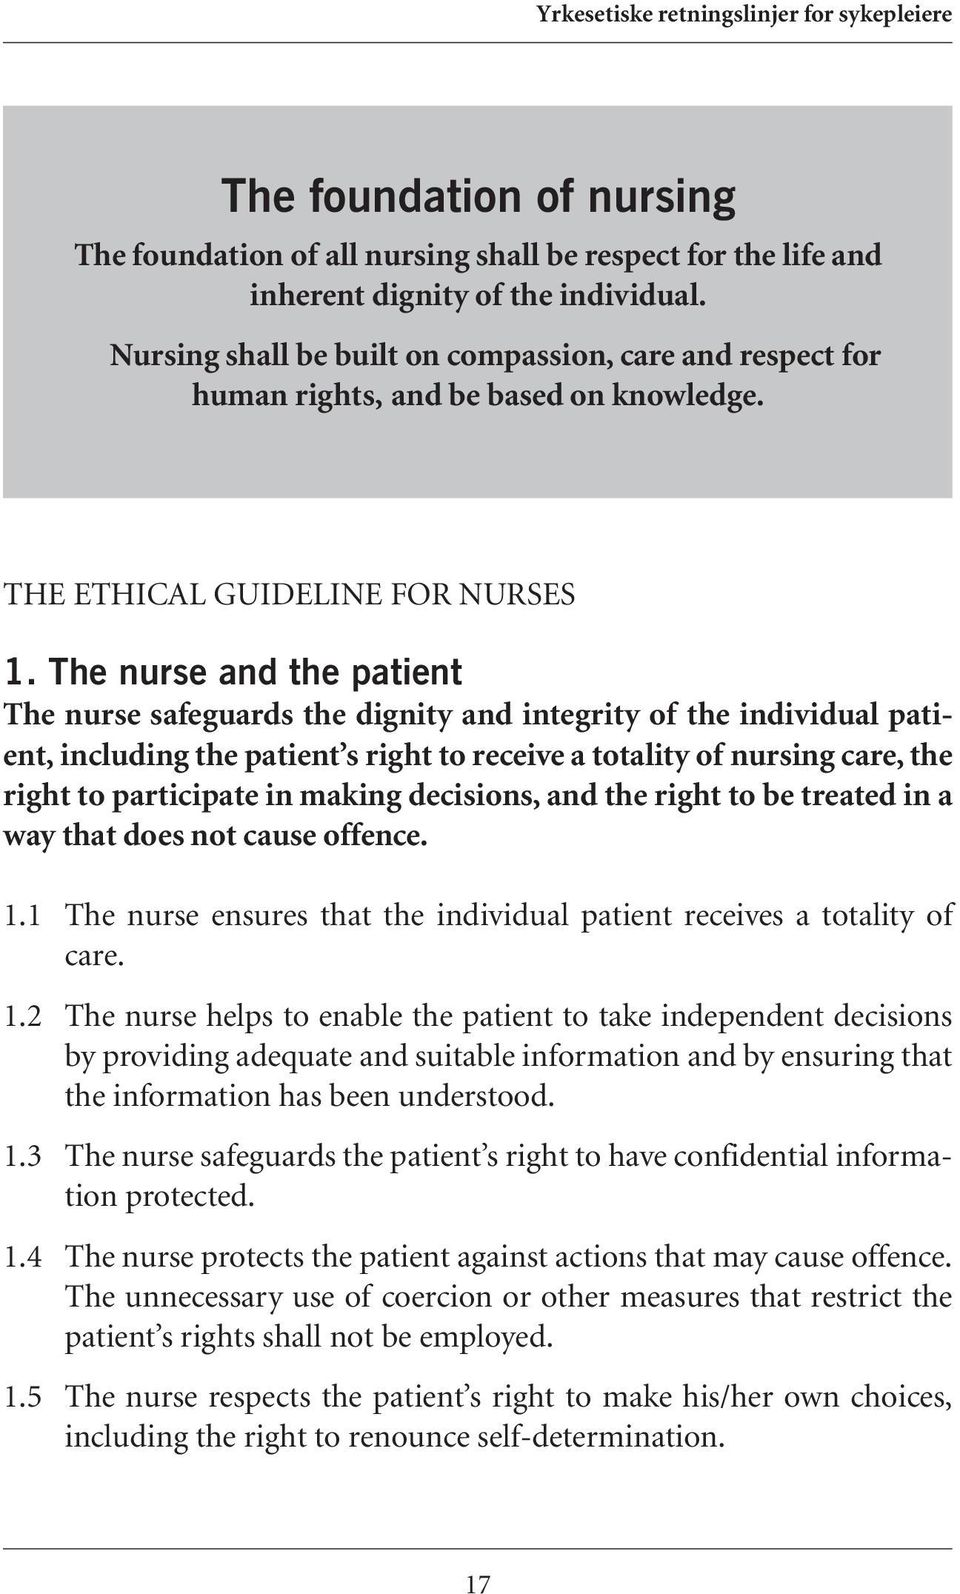 The nurse and the patient The nurse safeguards the dignity and integrity of the individual patient, including the patient s right to receive a totality of nursing care, the right to participate in